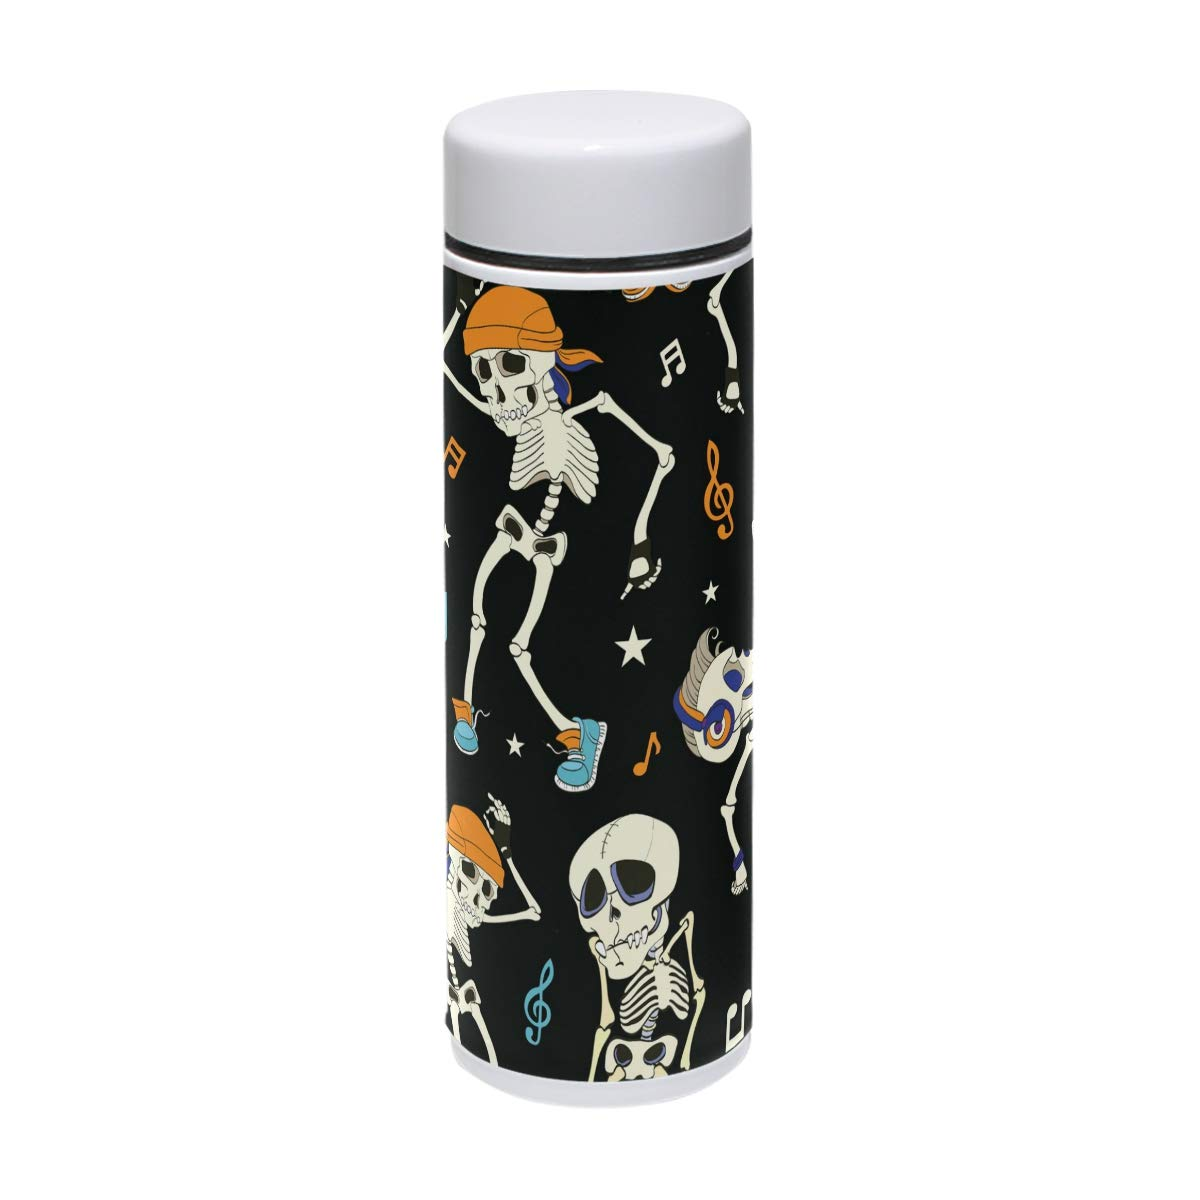 DEYYA Skull Dance Music Thermos Cup Stainless Steel Tumbler Vacuum Insulated Double Wall Travel Cup, 7.5oz